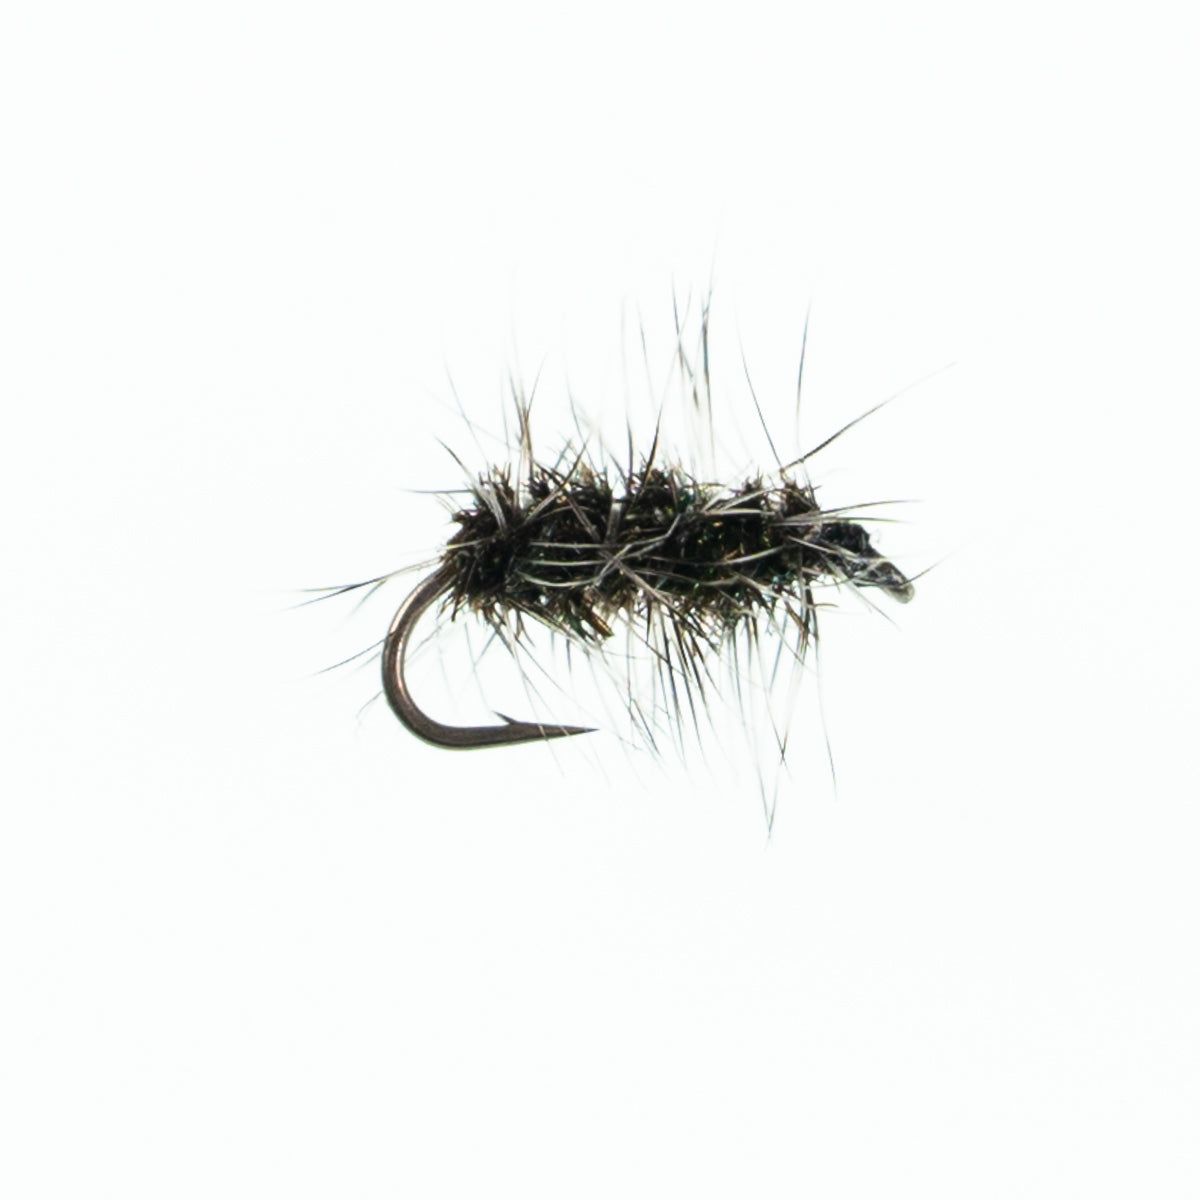 12 x Black ELK HAIR CADDIS dry trout fishing flies size 12 by Salmoflies